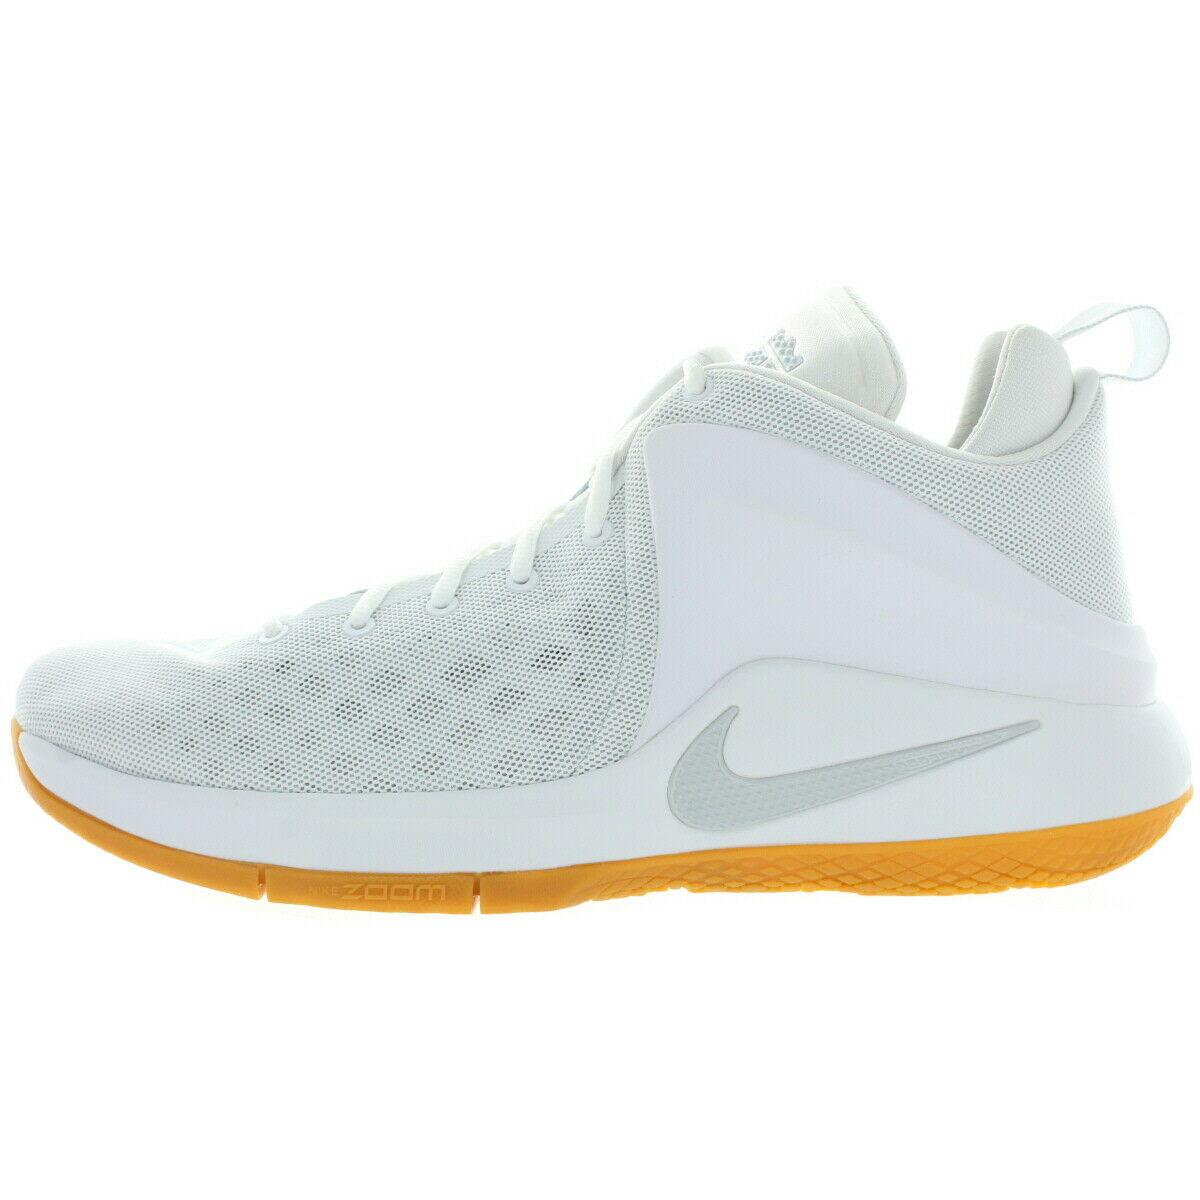 Nike LeBron James Mens Zoom Witness Basketball shoes Pure Platinum 14 Medium